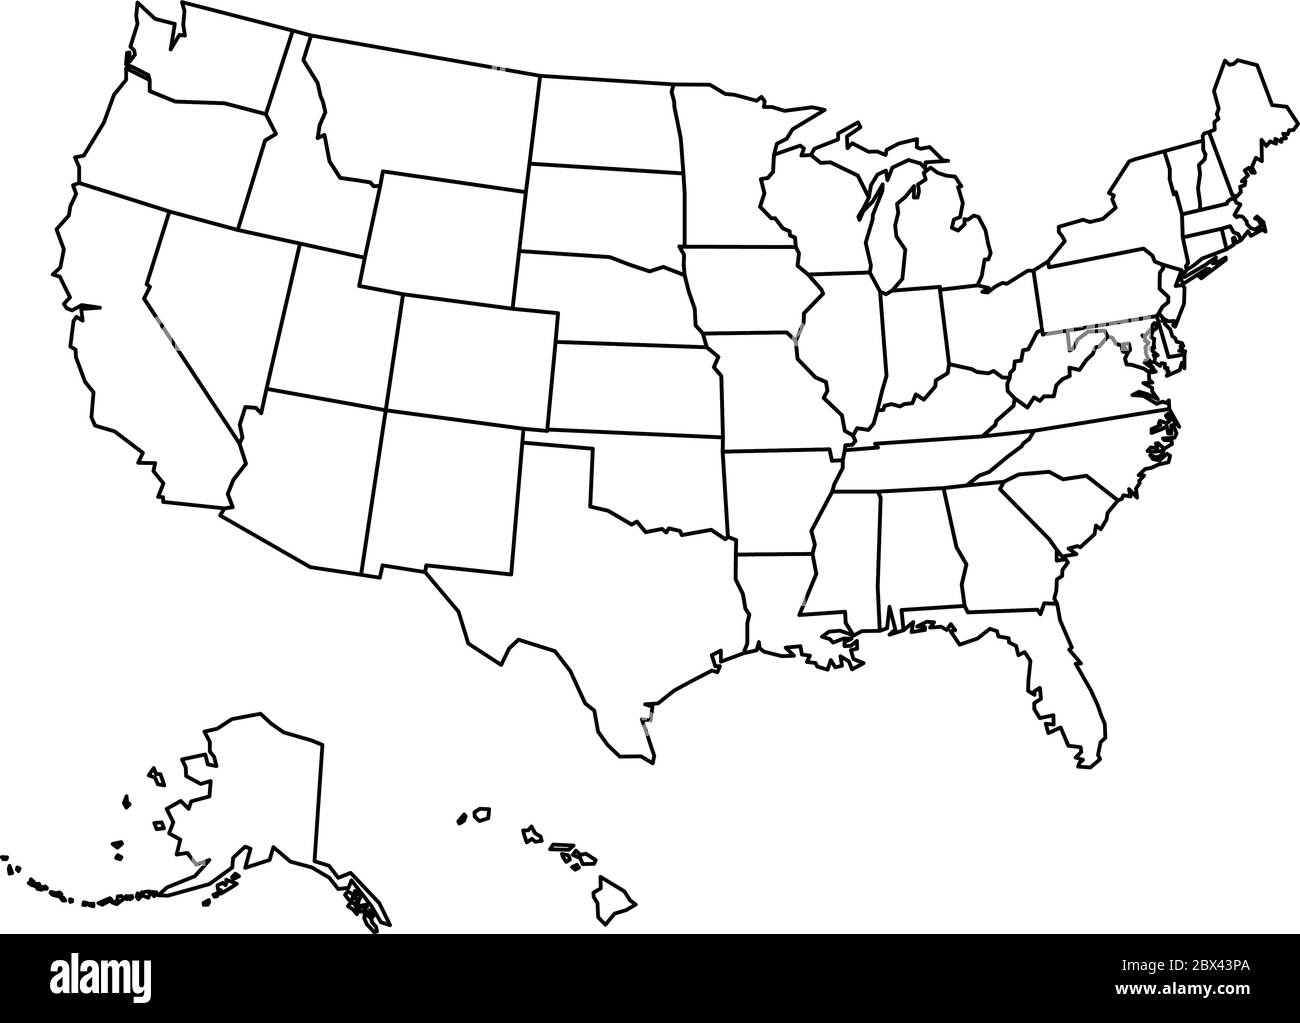 blank outline map of the united states Blank outline map of United States of America. Simplified vector